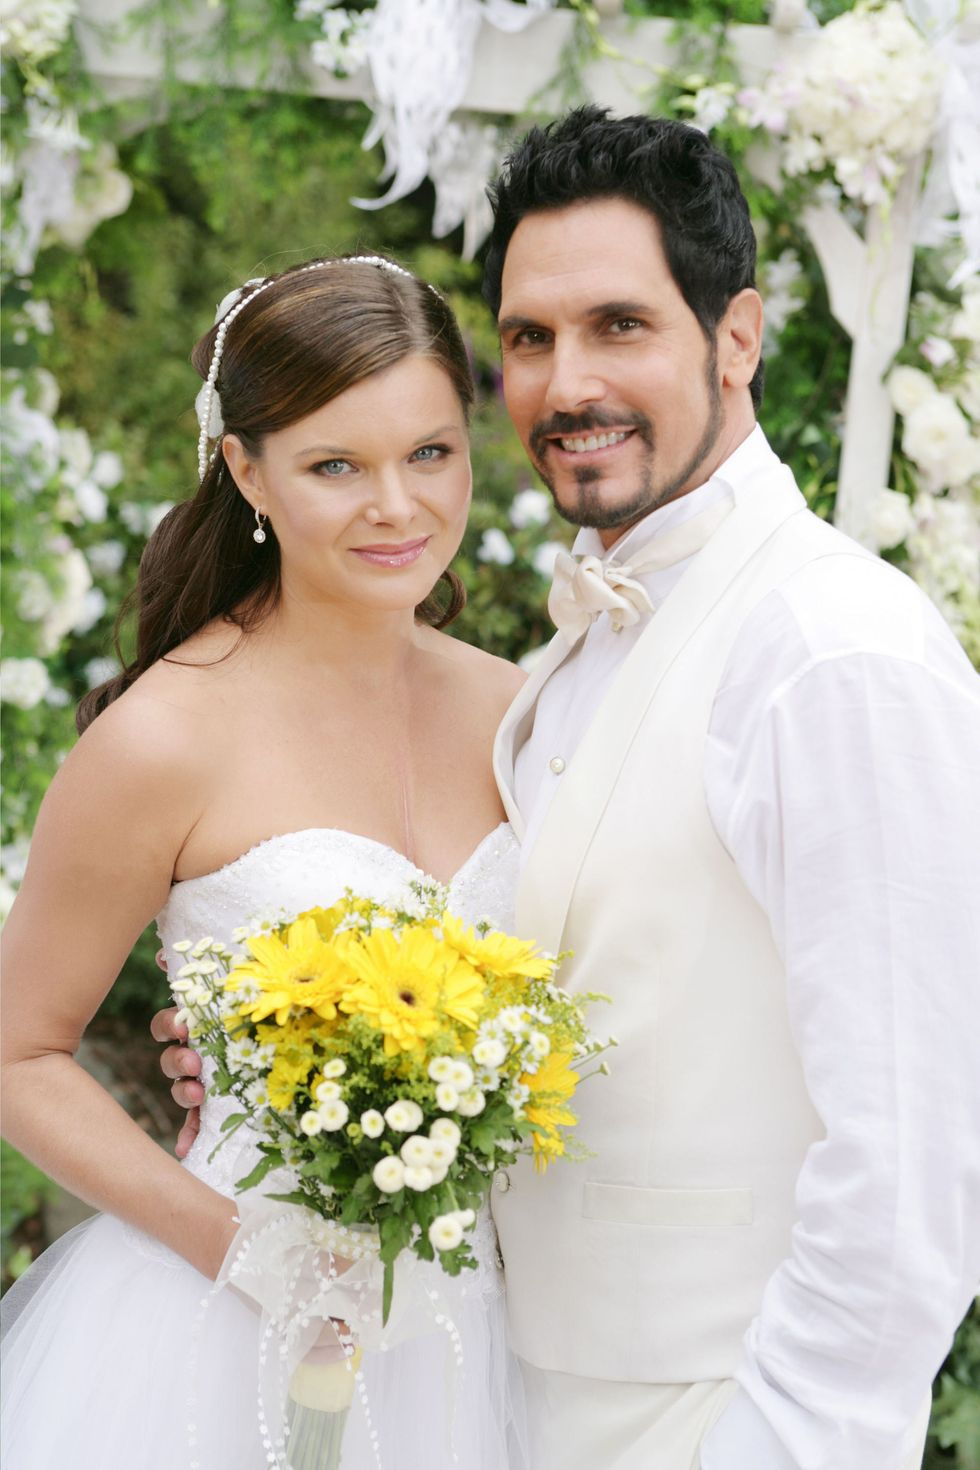 Heather Tom and Don Diamont in TV wedding for a soap opera.